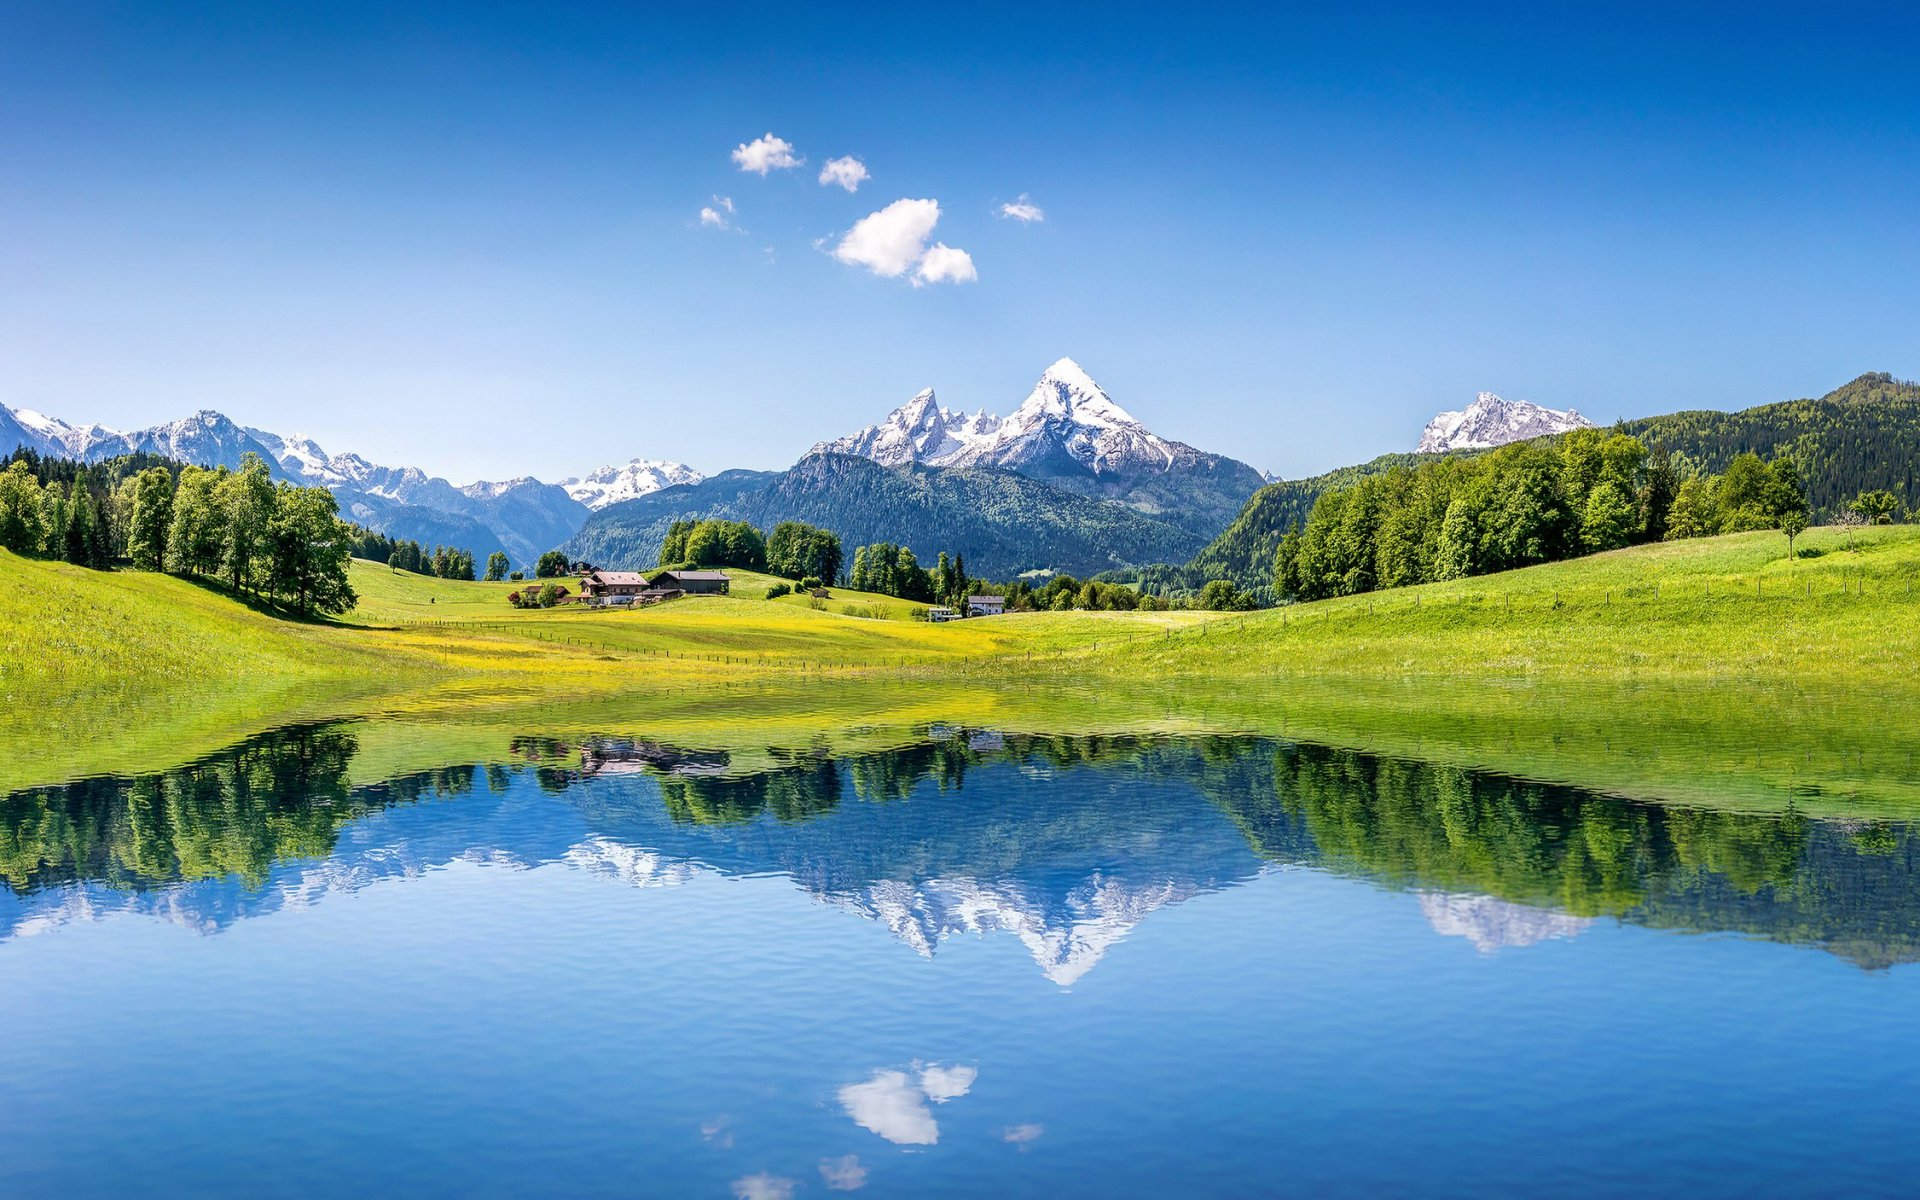 alps full hd wallpaper and background image | 1920x1200 | id:546174